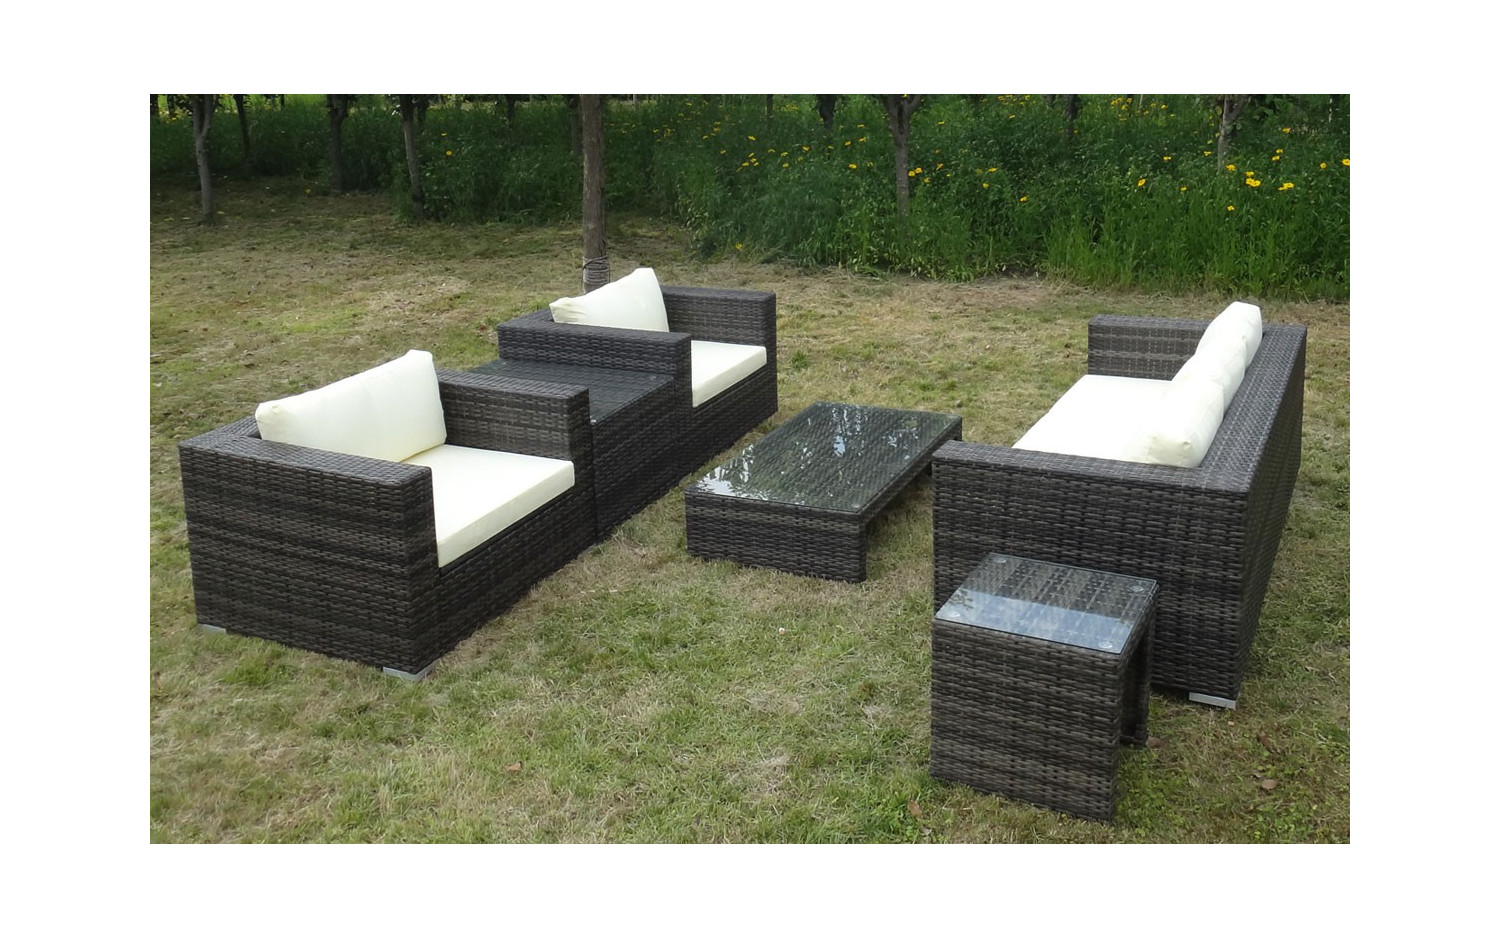 baidani rattan garten lounge pride select integrierter stauraum baidani shop. Black Bedroom Furniture Sets. Home Design Ideas